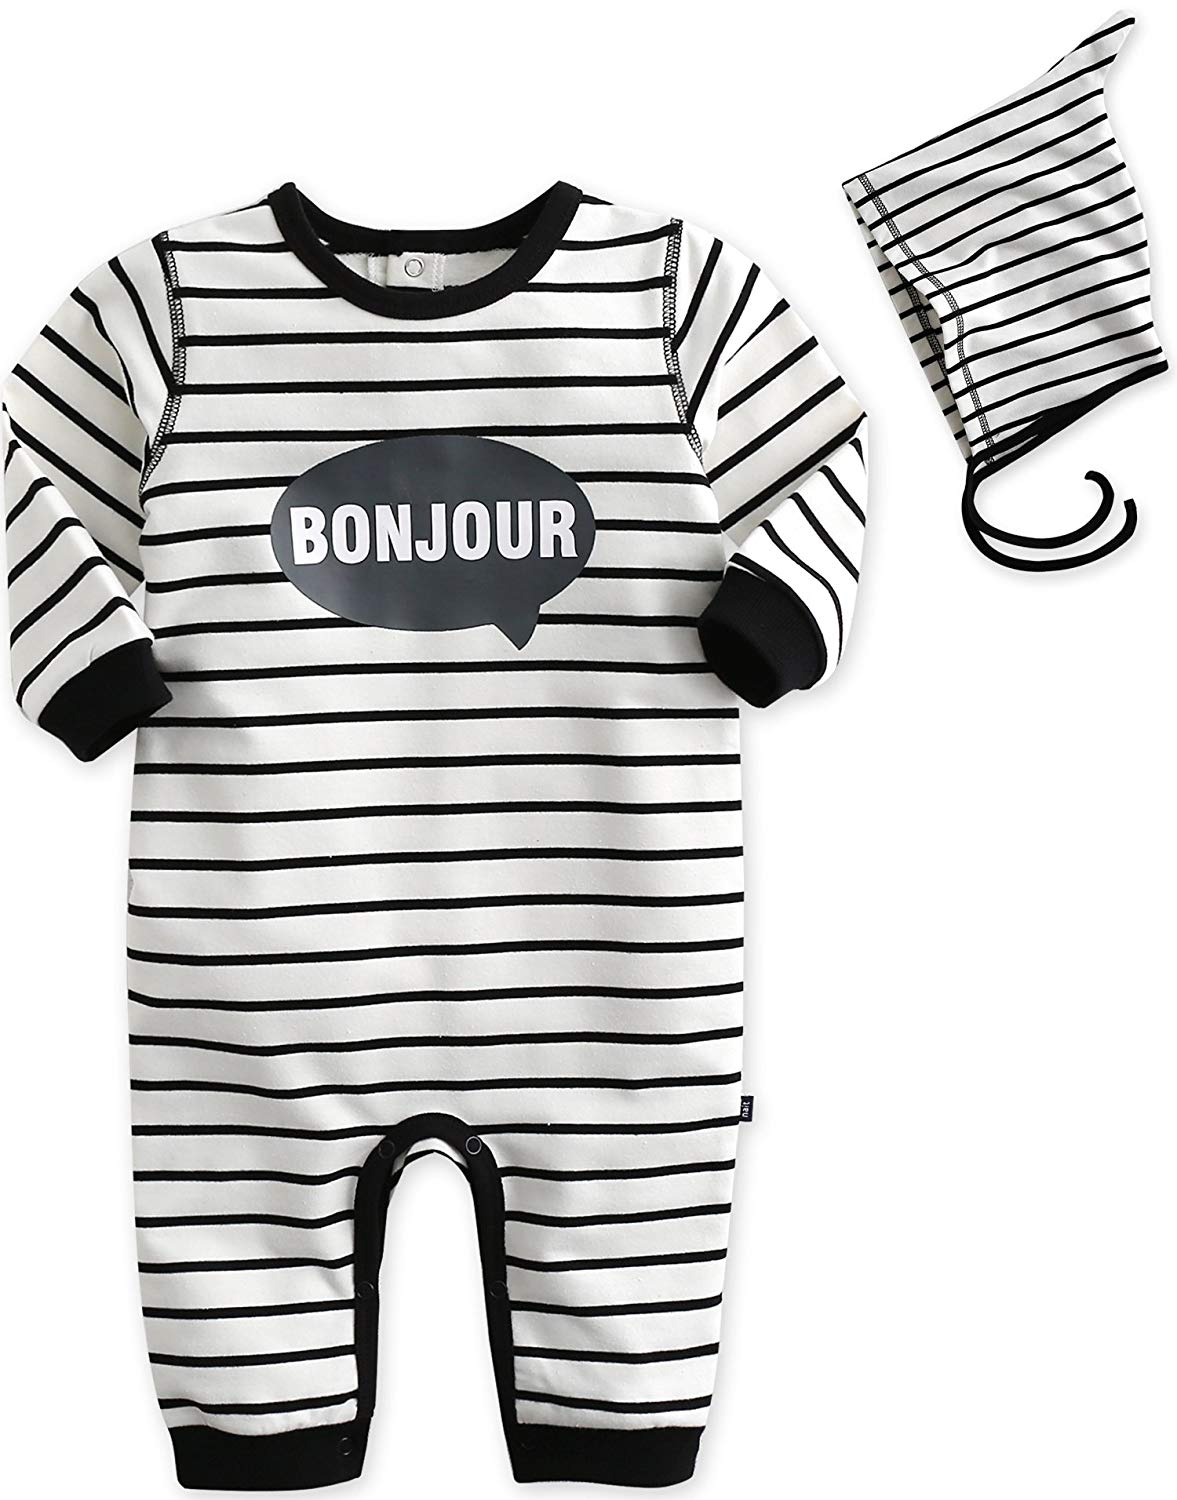 Bonjour One Piece Set